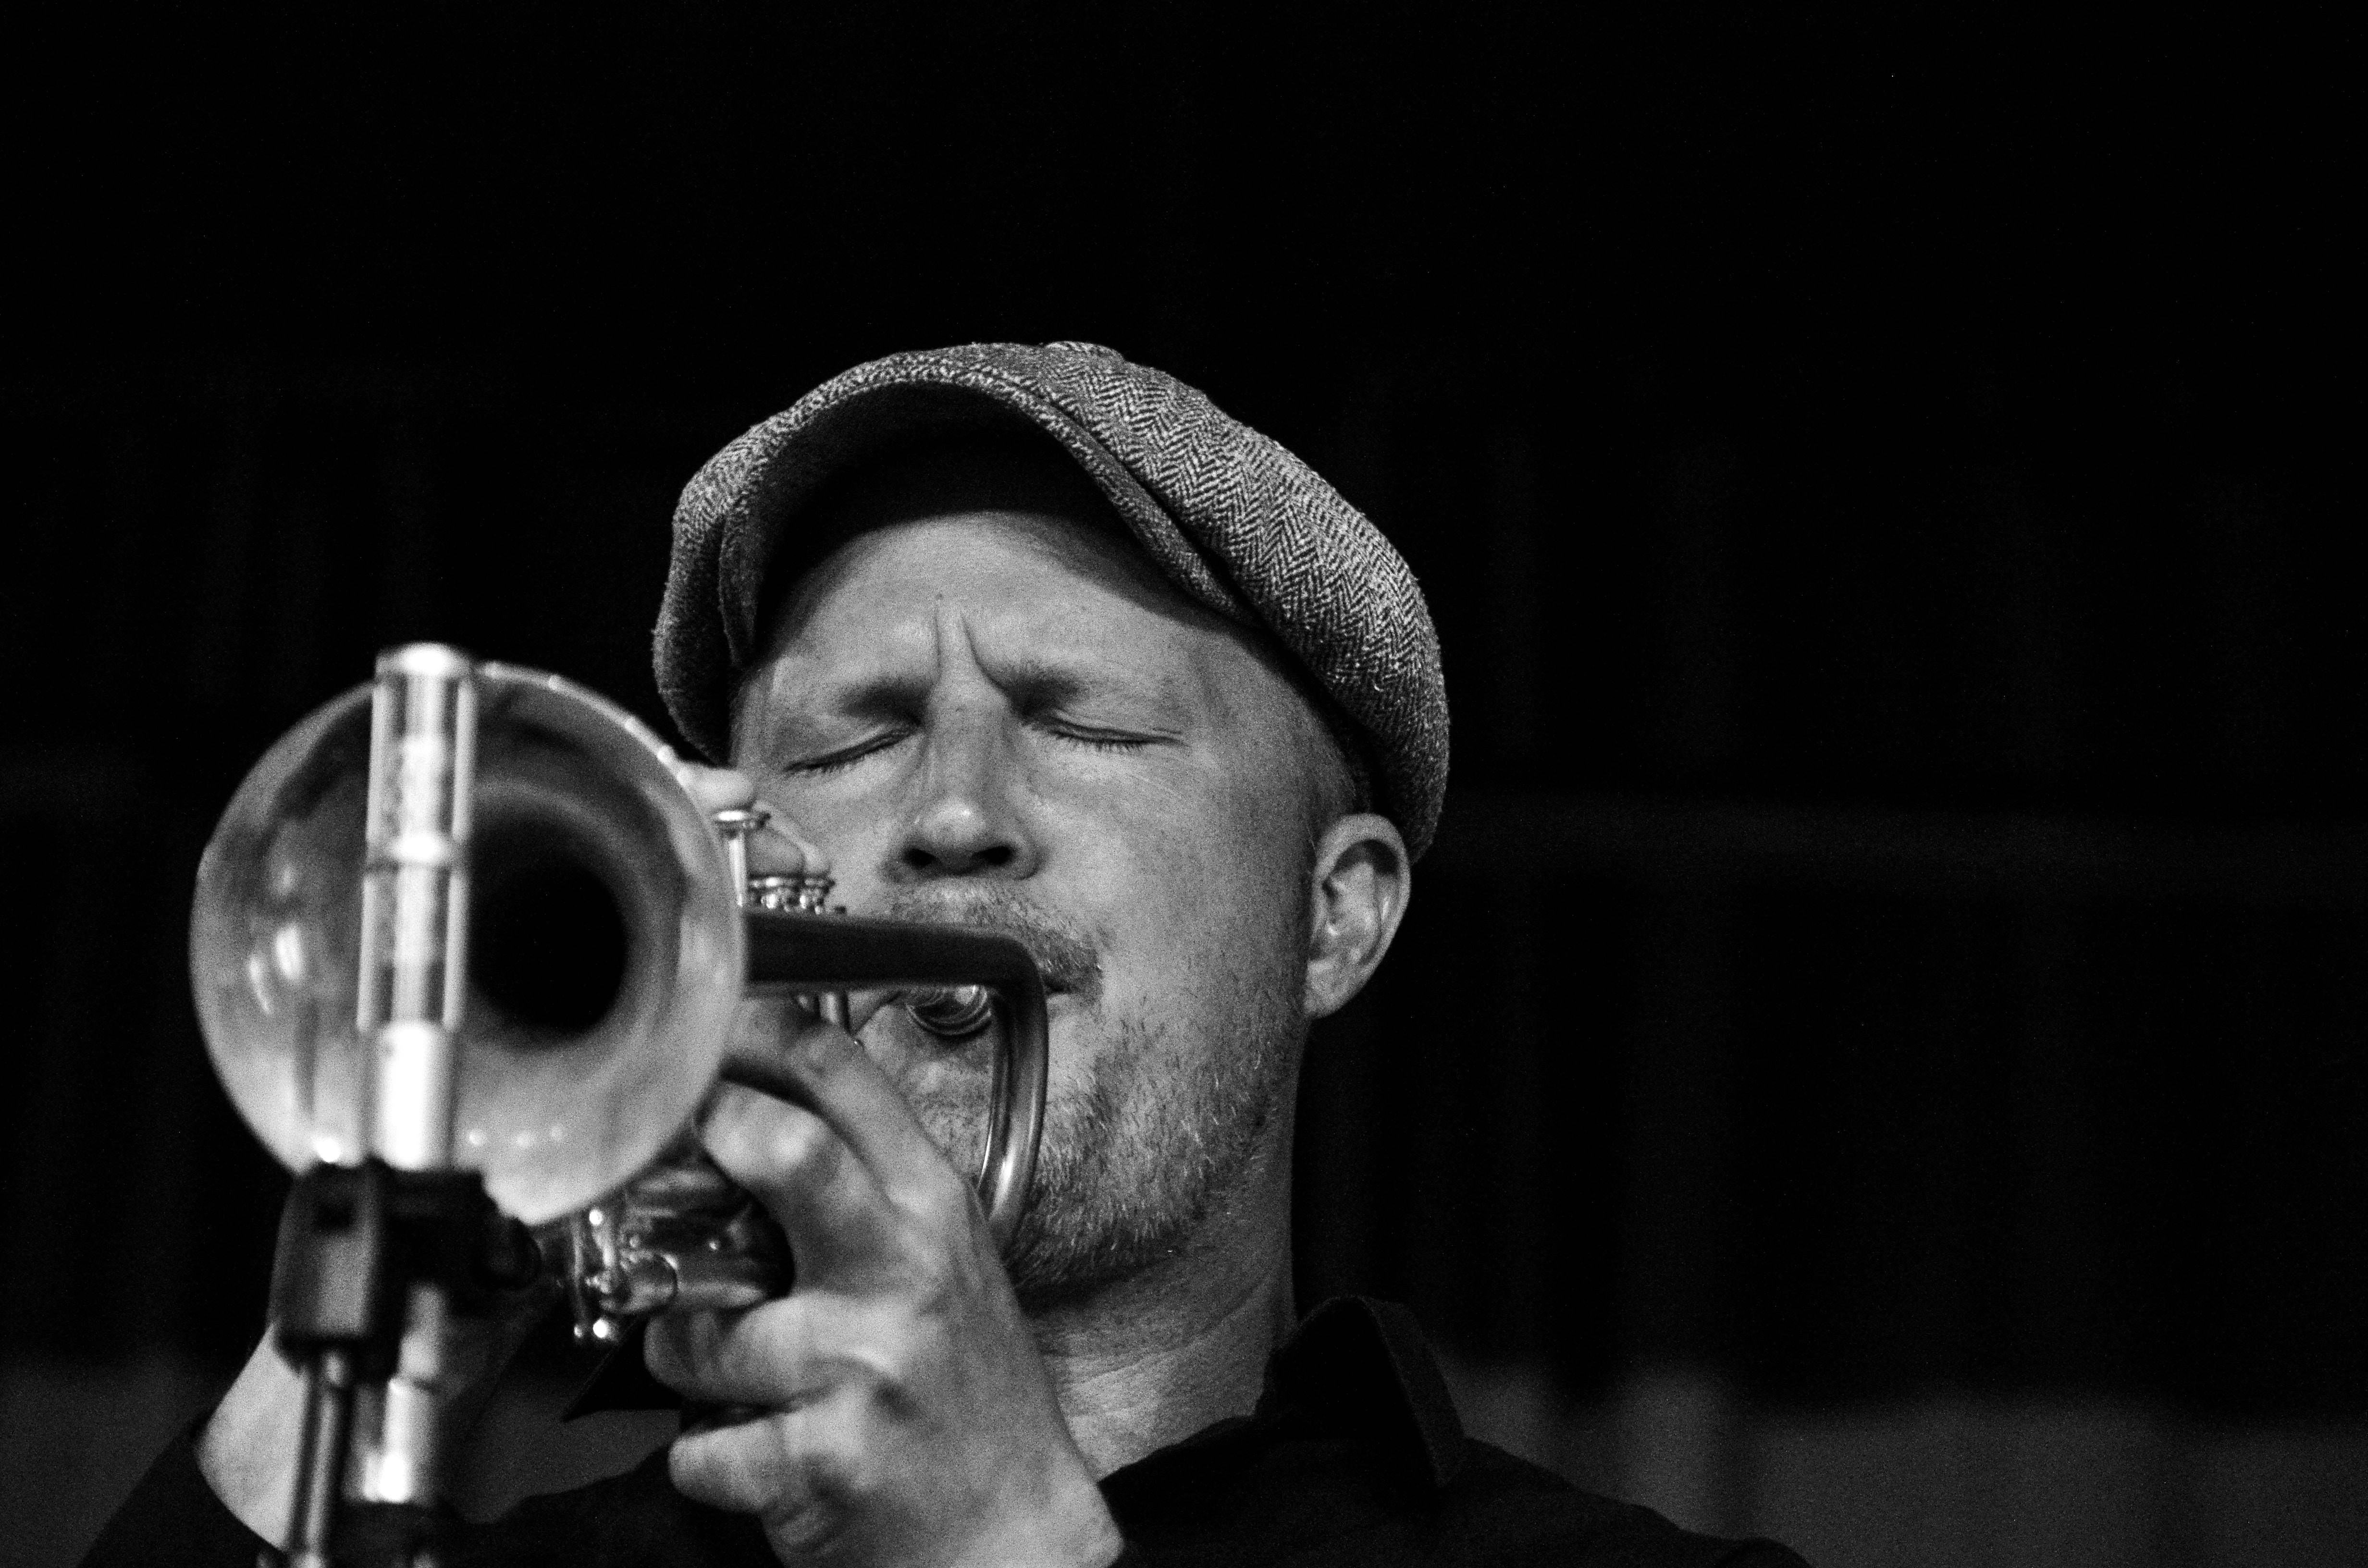 grayscale photo of musician